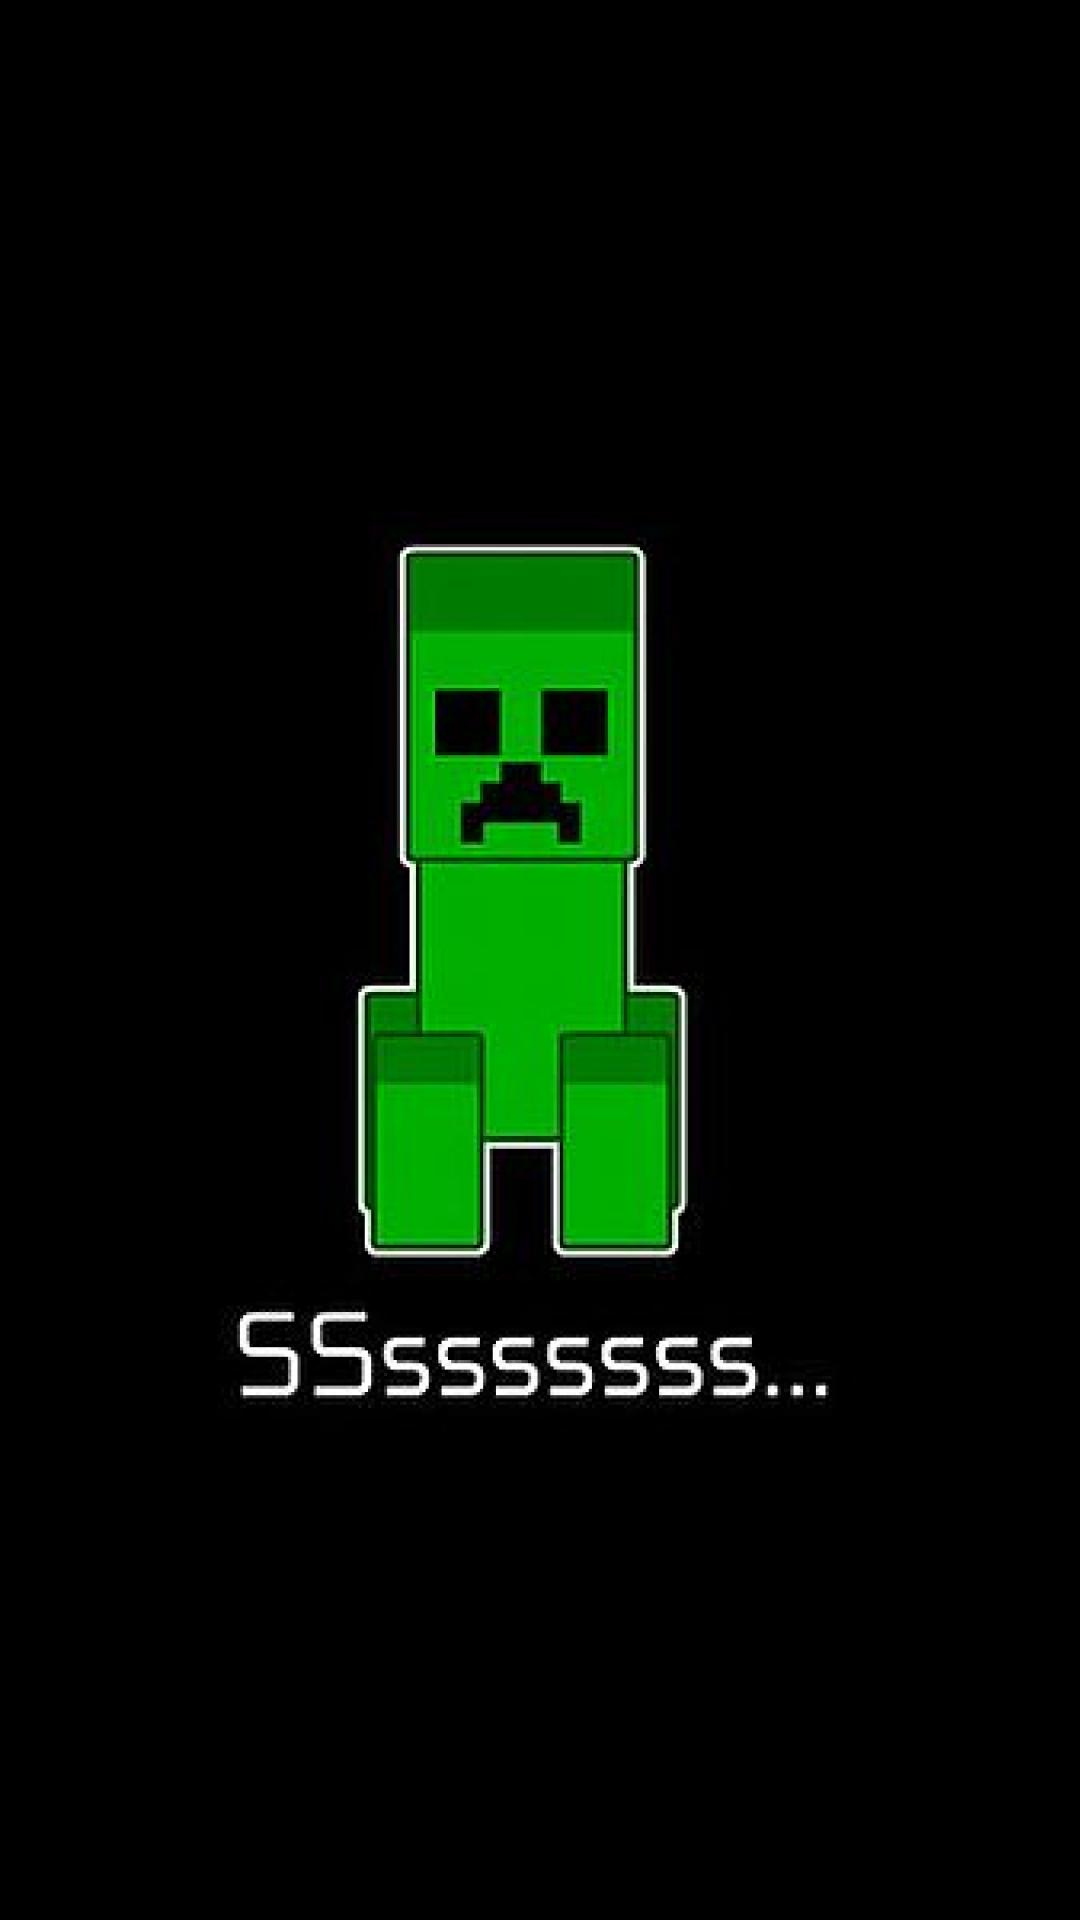 Download Hd Minecraft Mobile Phone Wallpapers 1080x1920 Steve